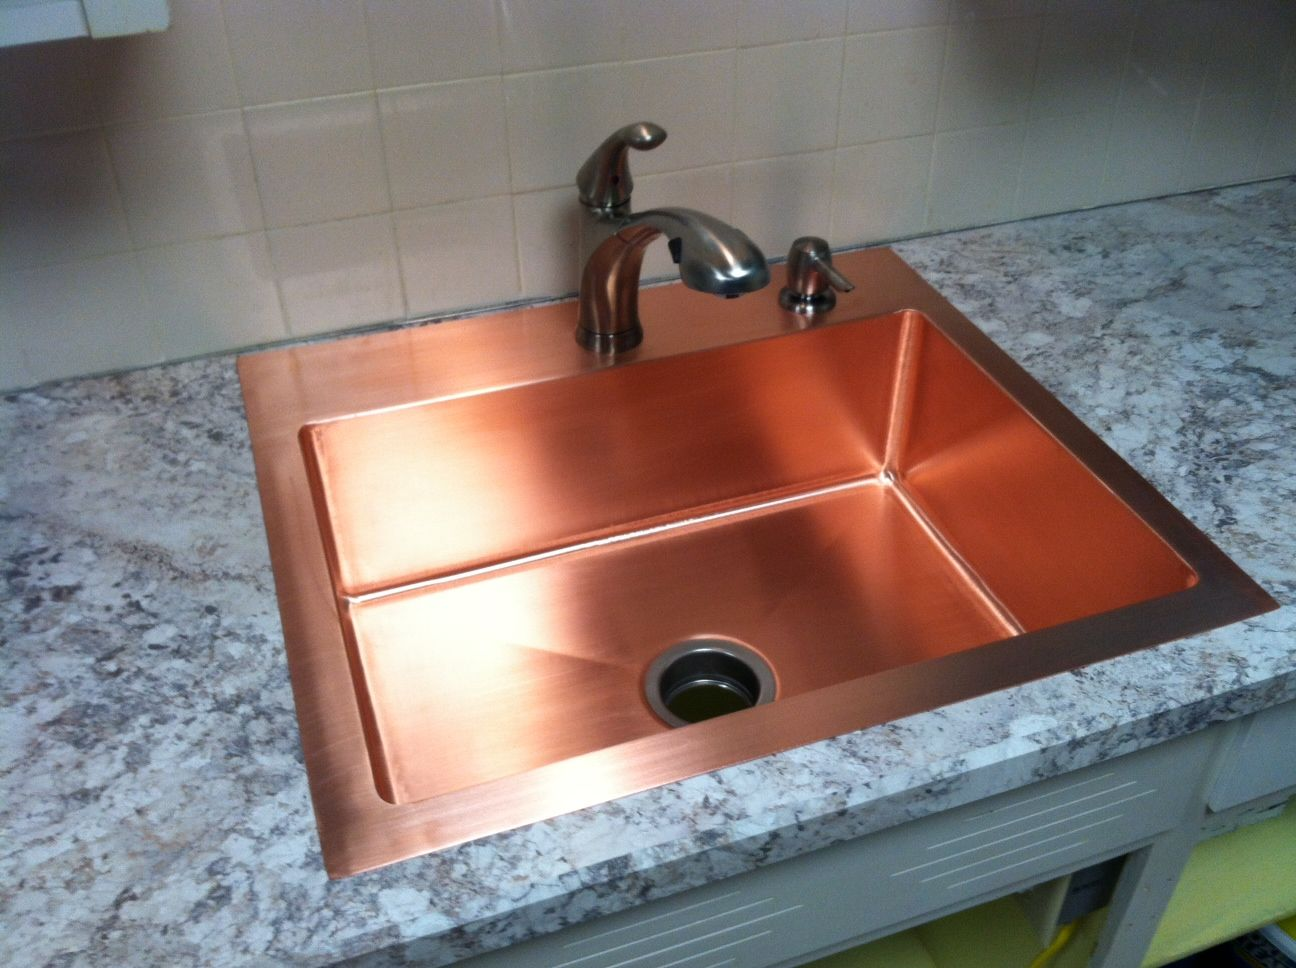 Cleaning Copper Kitchen Sinks